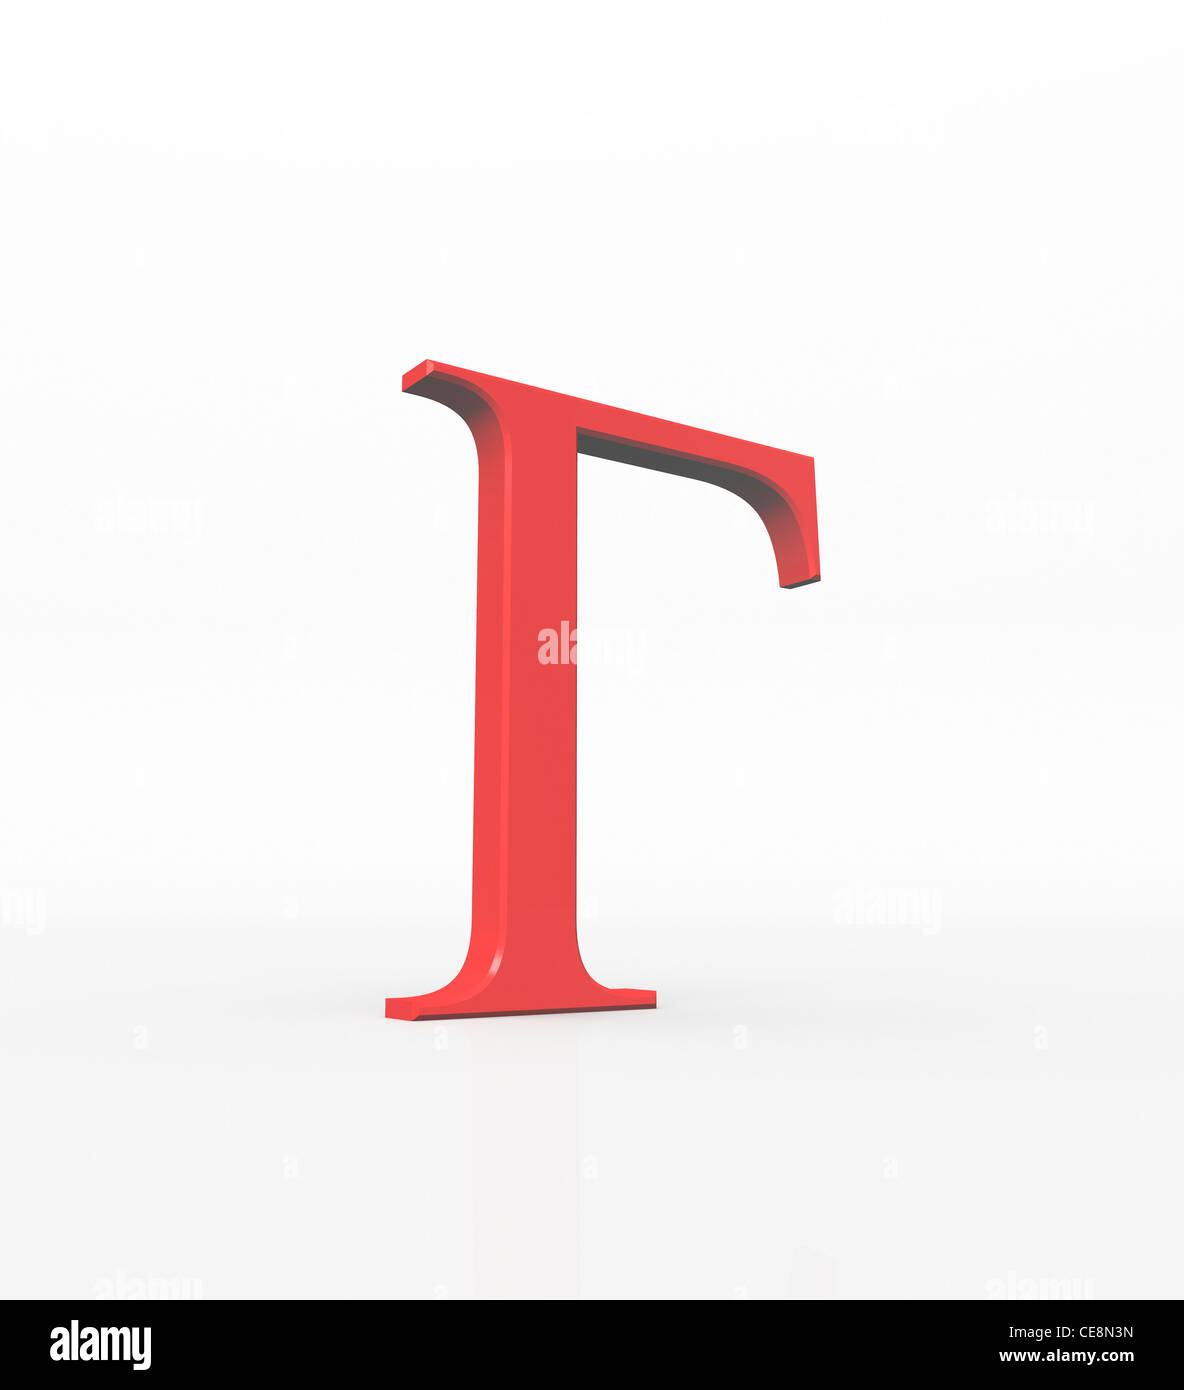 Gamma third letter Greek alphabet In system Greek numerals it